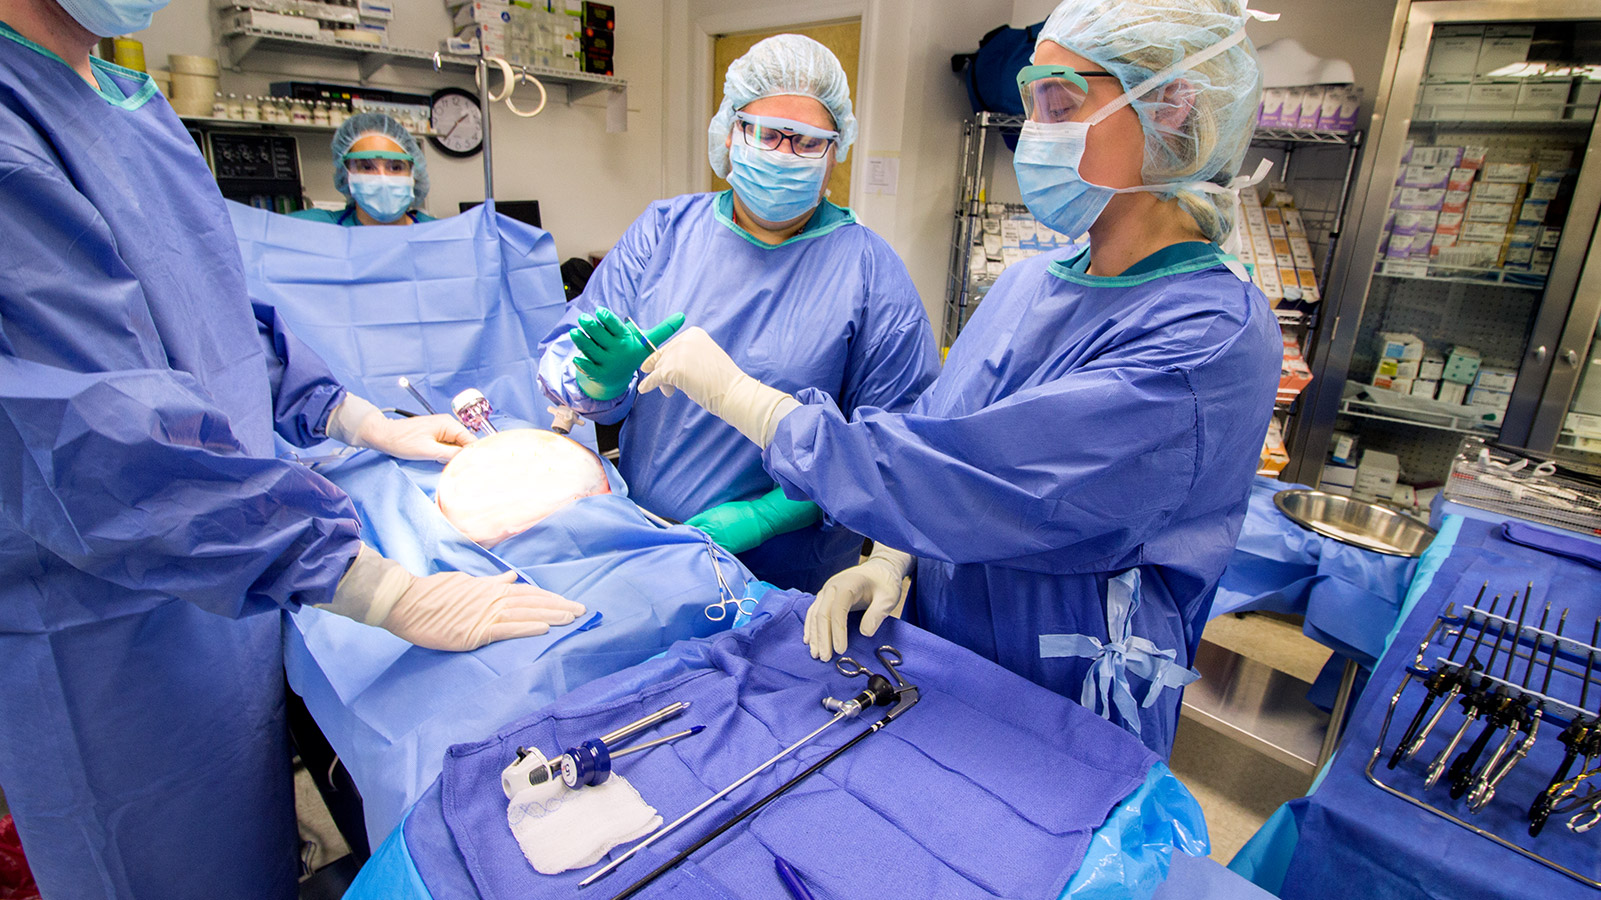 Surgical Technician students practice performing surgery together in mock operation room